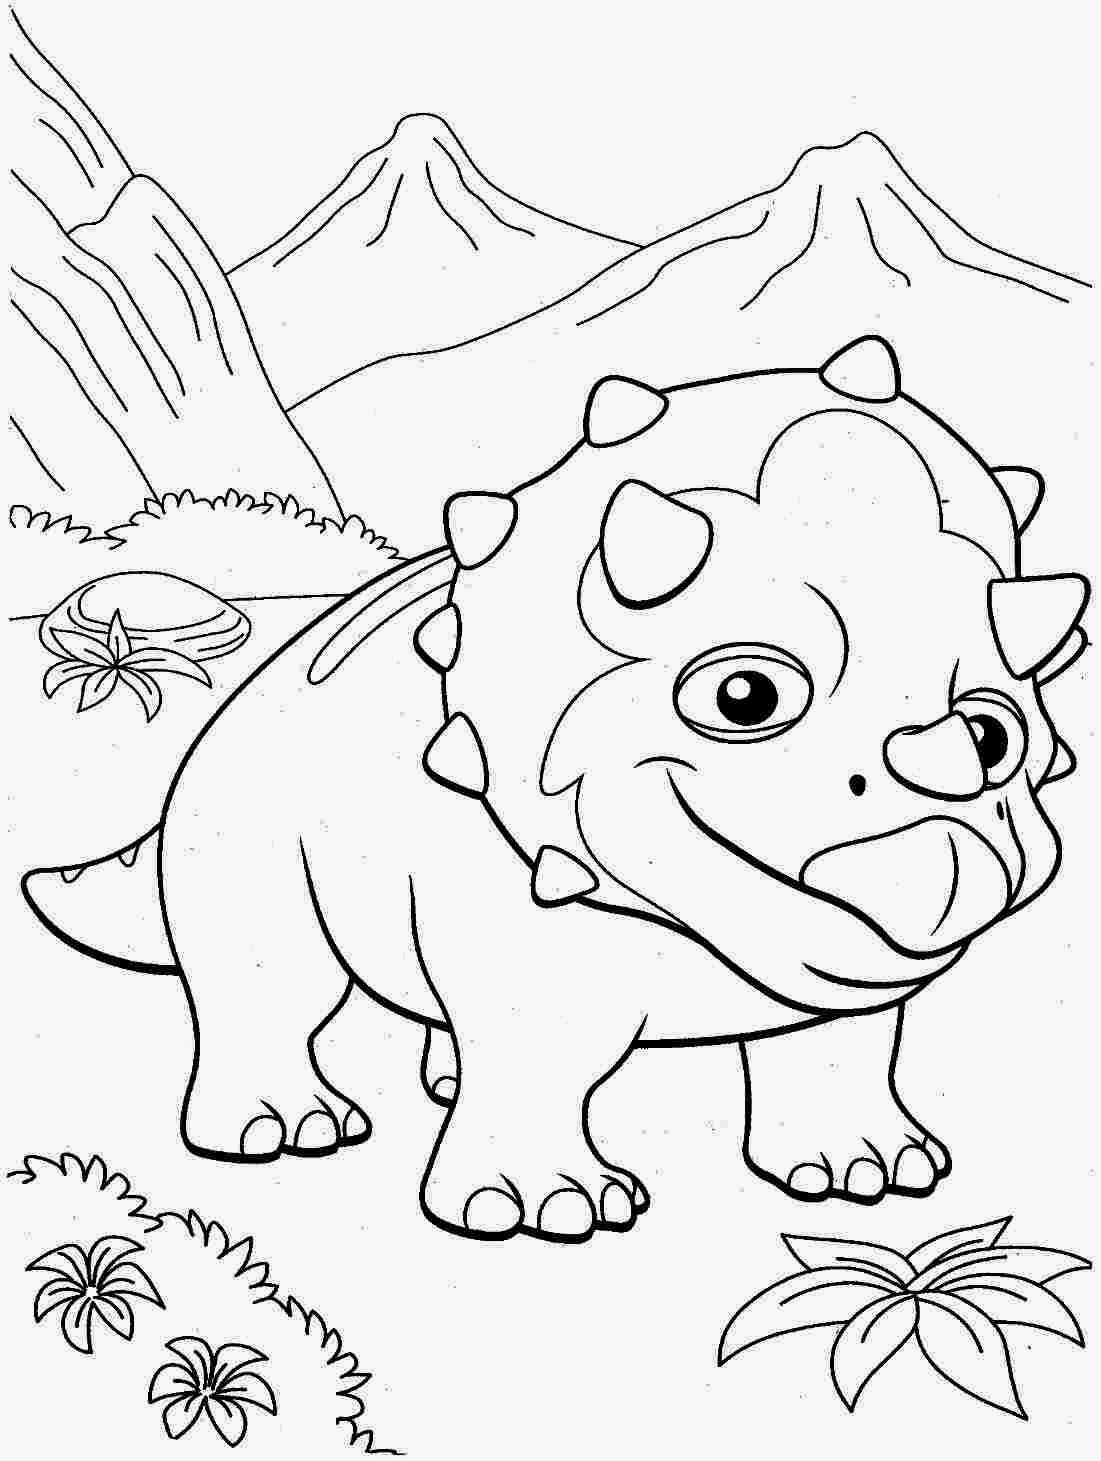 dinosaurs printable coloring pages coloring pages dinosaur free printable coloring pages dinosaurs pages printable coloring 1 1